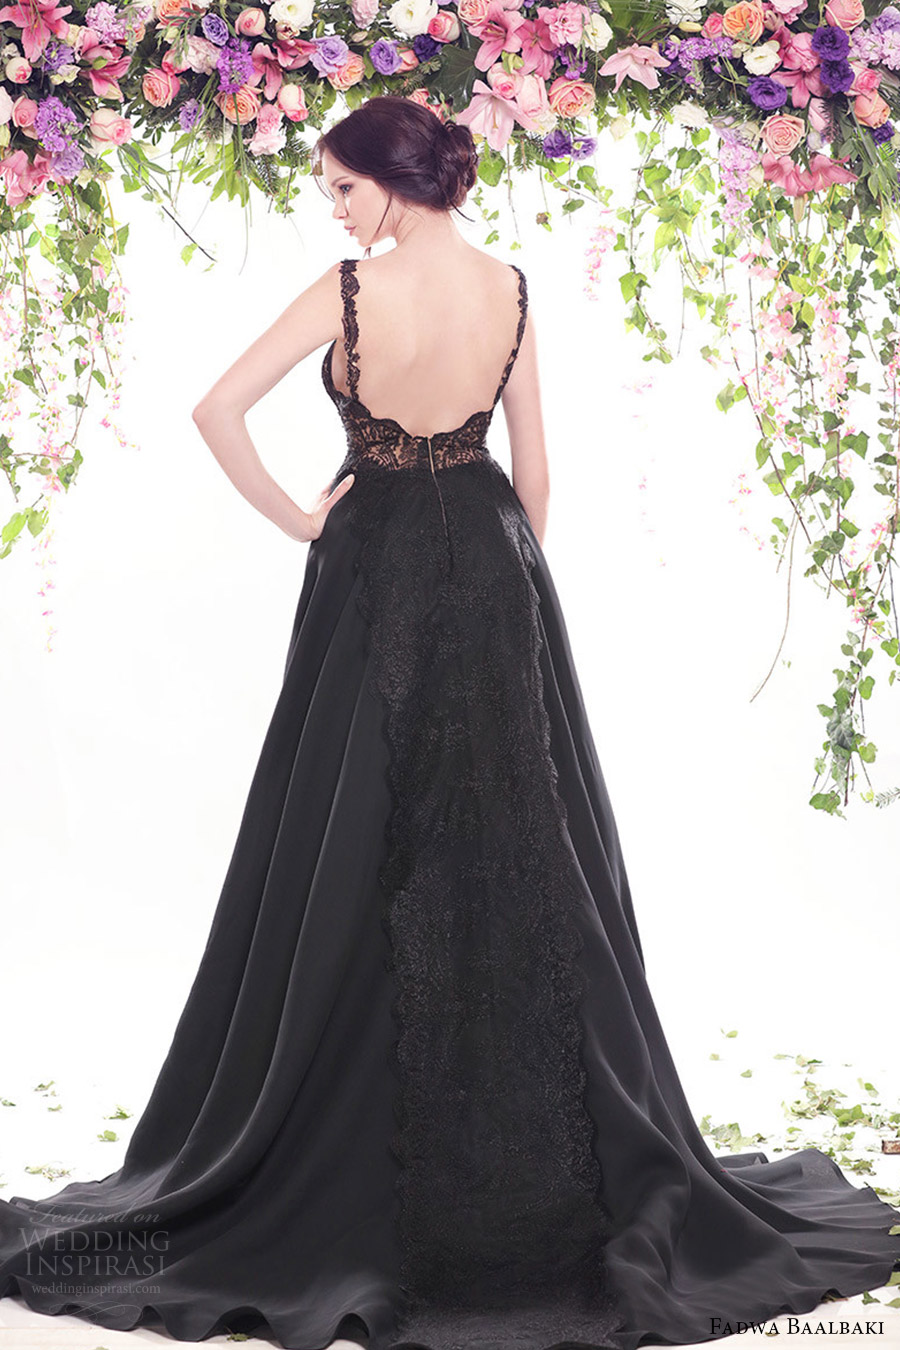 fadwa baalbaki spring 2016 couture strapless sweetheart black ball gown multi color bodice bv low back train